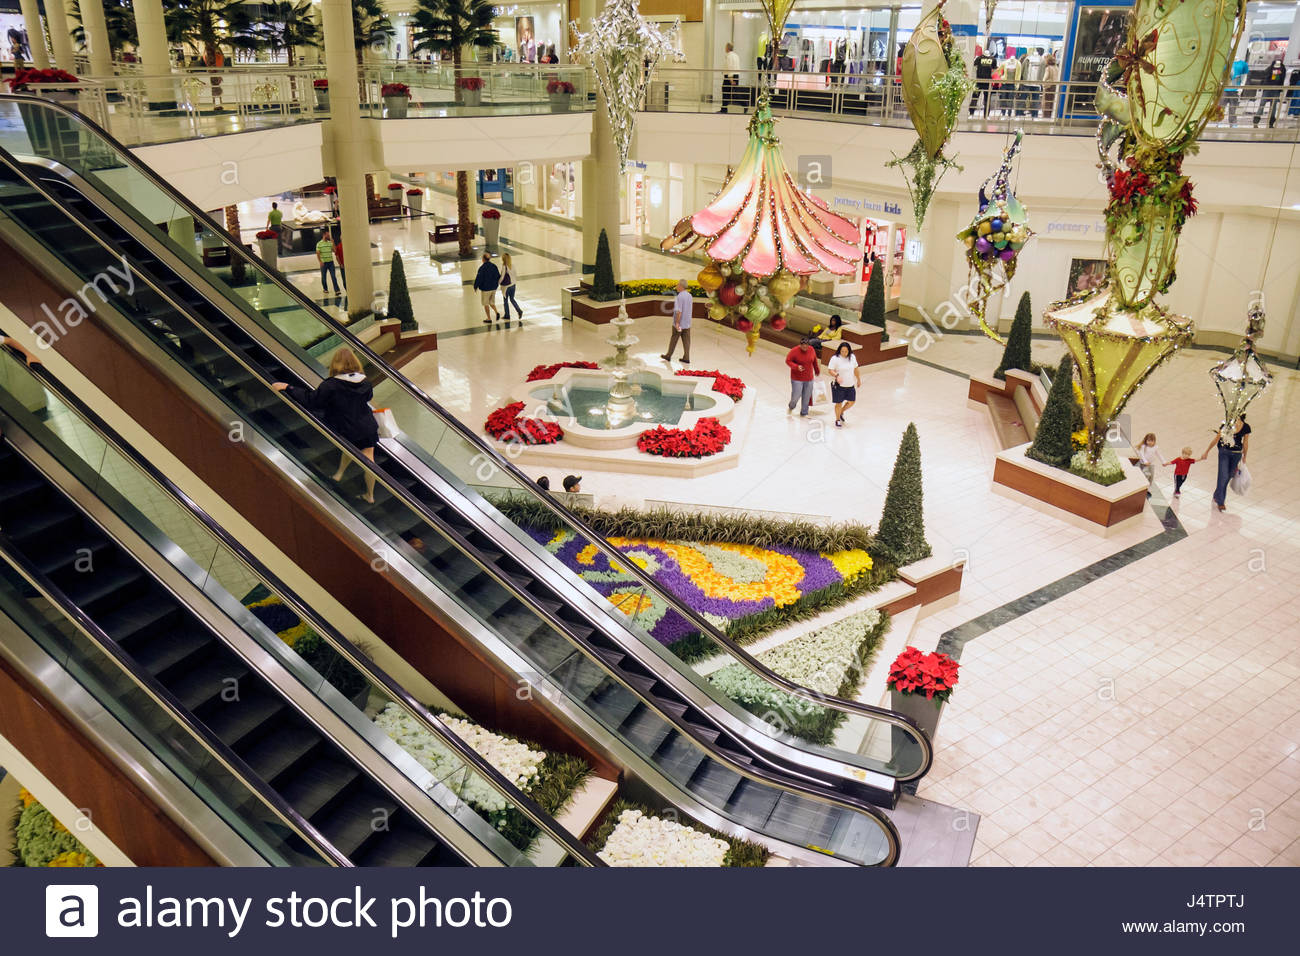 Holiday decoration shopping stock photos holiday - Palm beach gardens mall directory ...